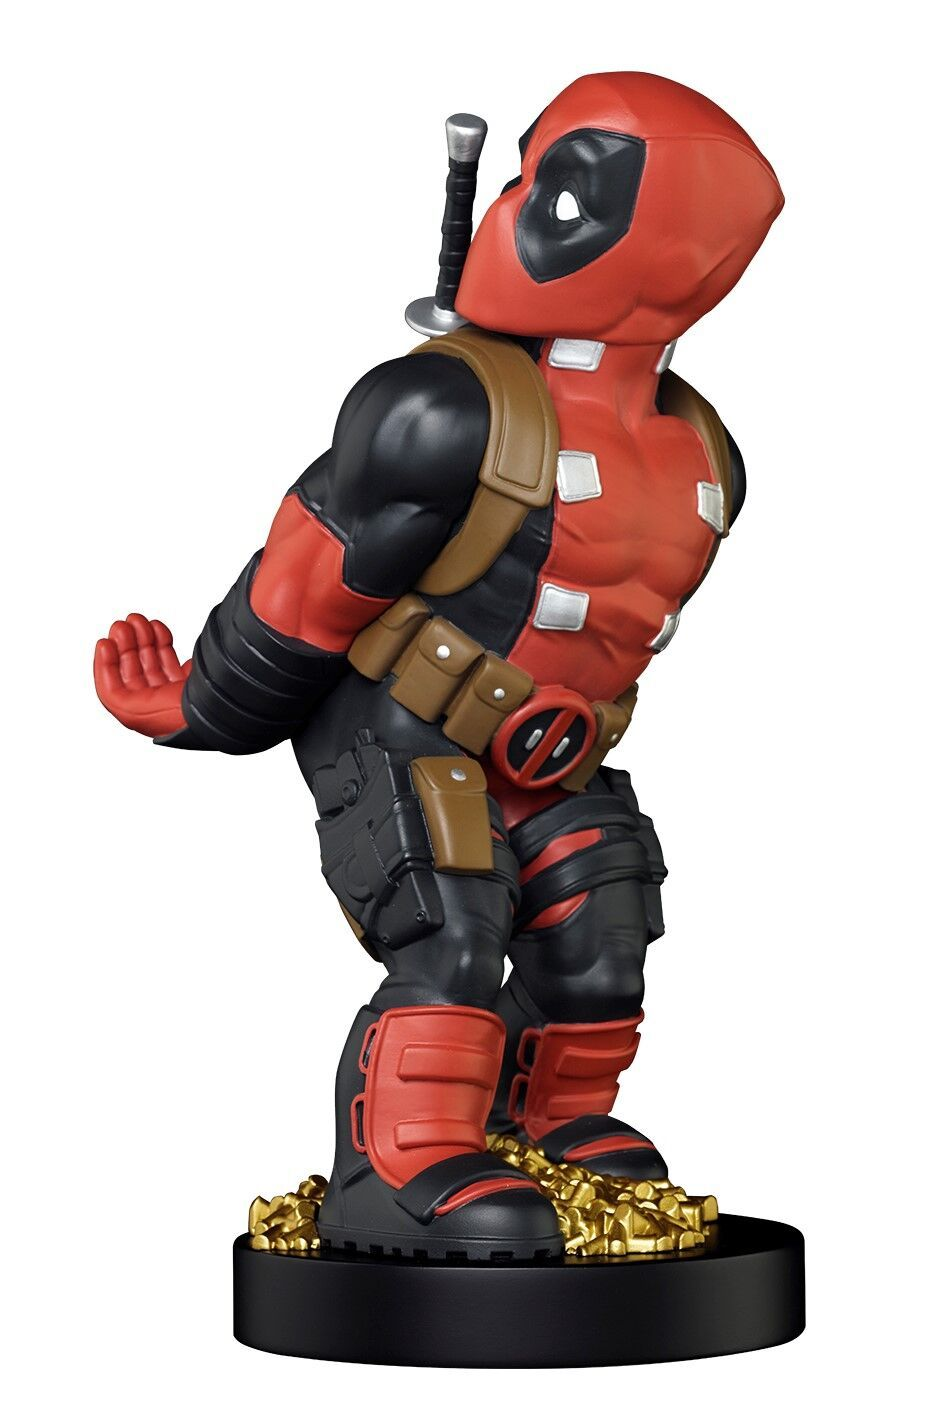 Cable Guy Controller Holder - Deadpool New Legs Version for PS4 image